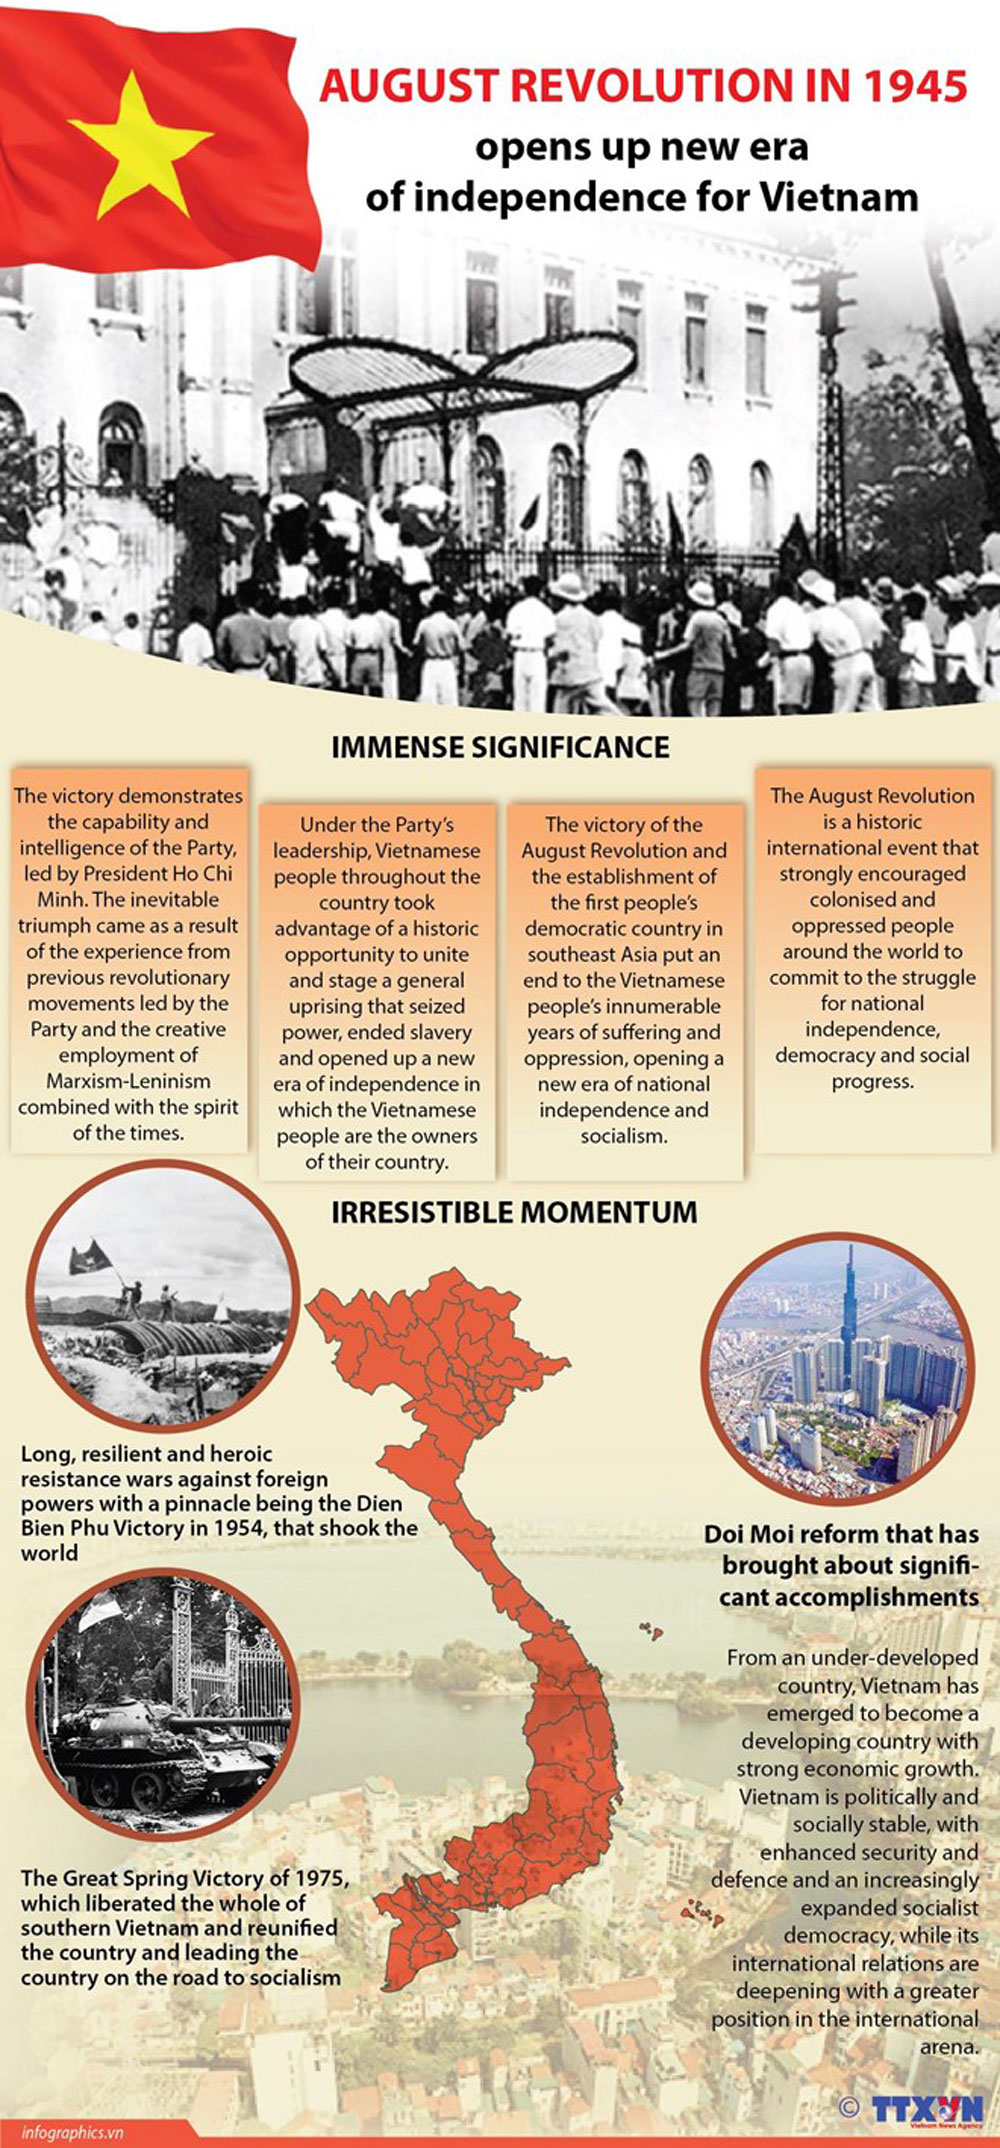 August Revolution, 1945, historic event, key milestone, national defence and liberation